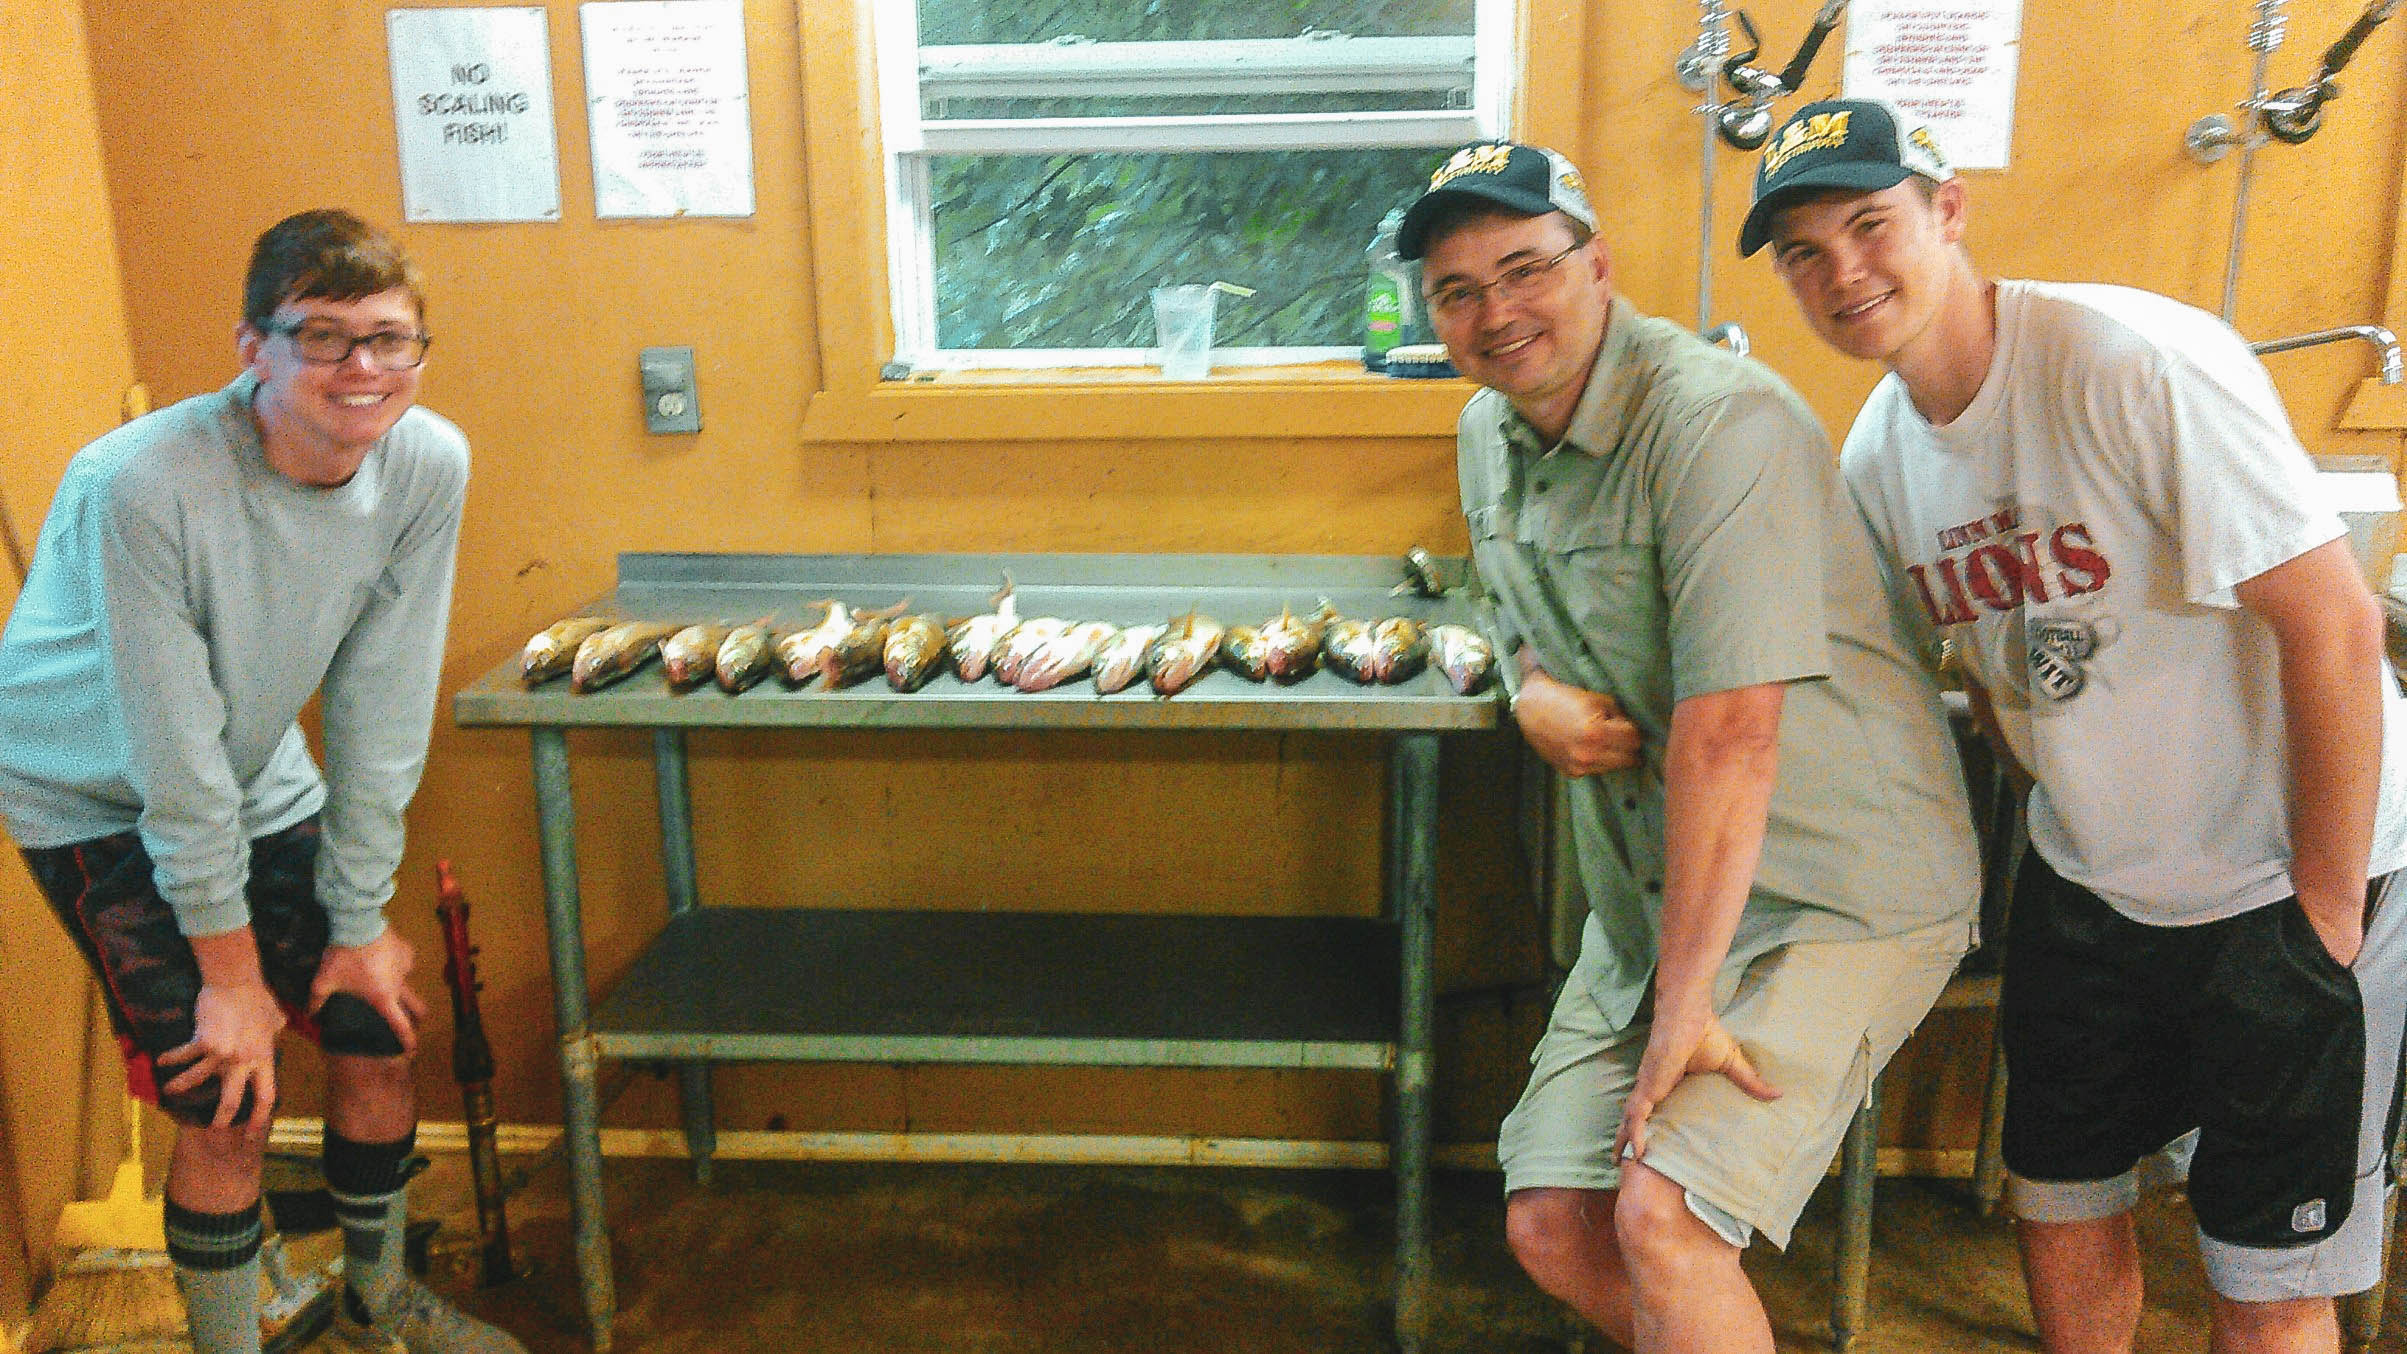 MN Fishing Pro Guide Jason Boser clients with large catch